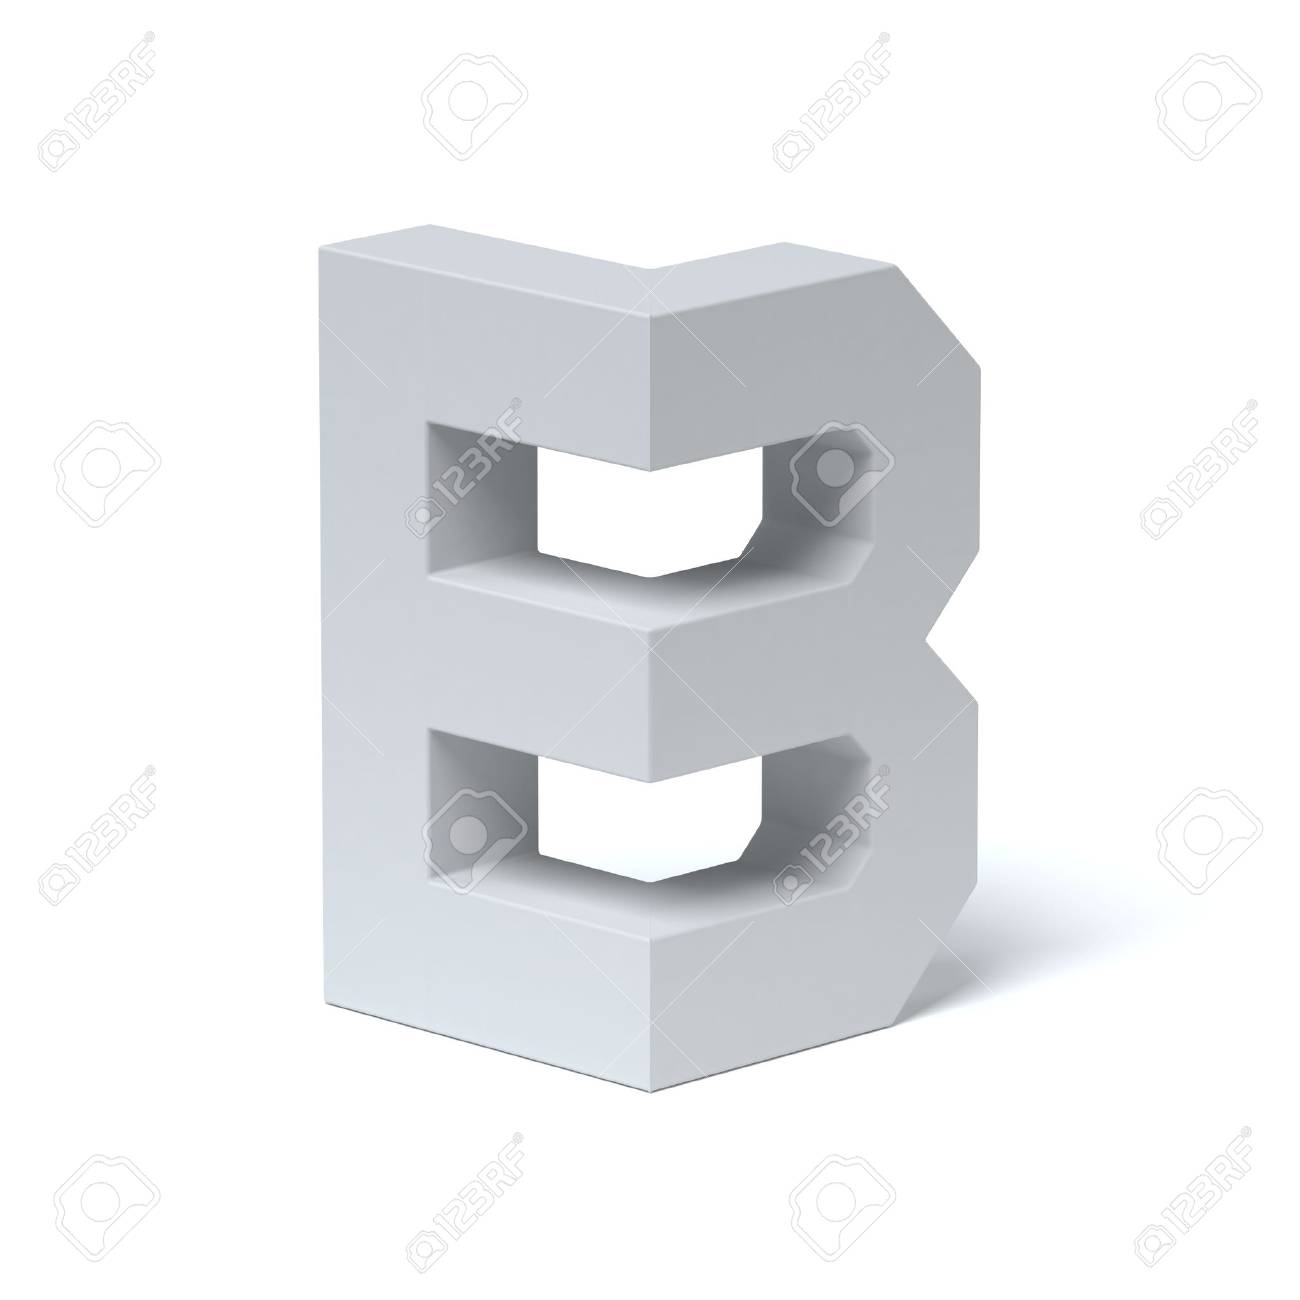 Isometric Font Letter B 3d Rendering Stock Photo, Picture And